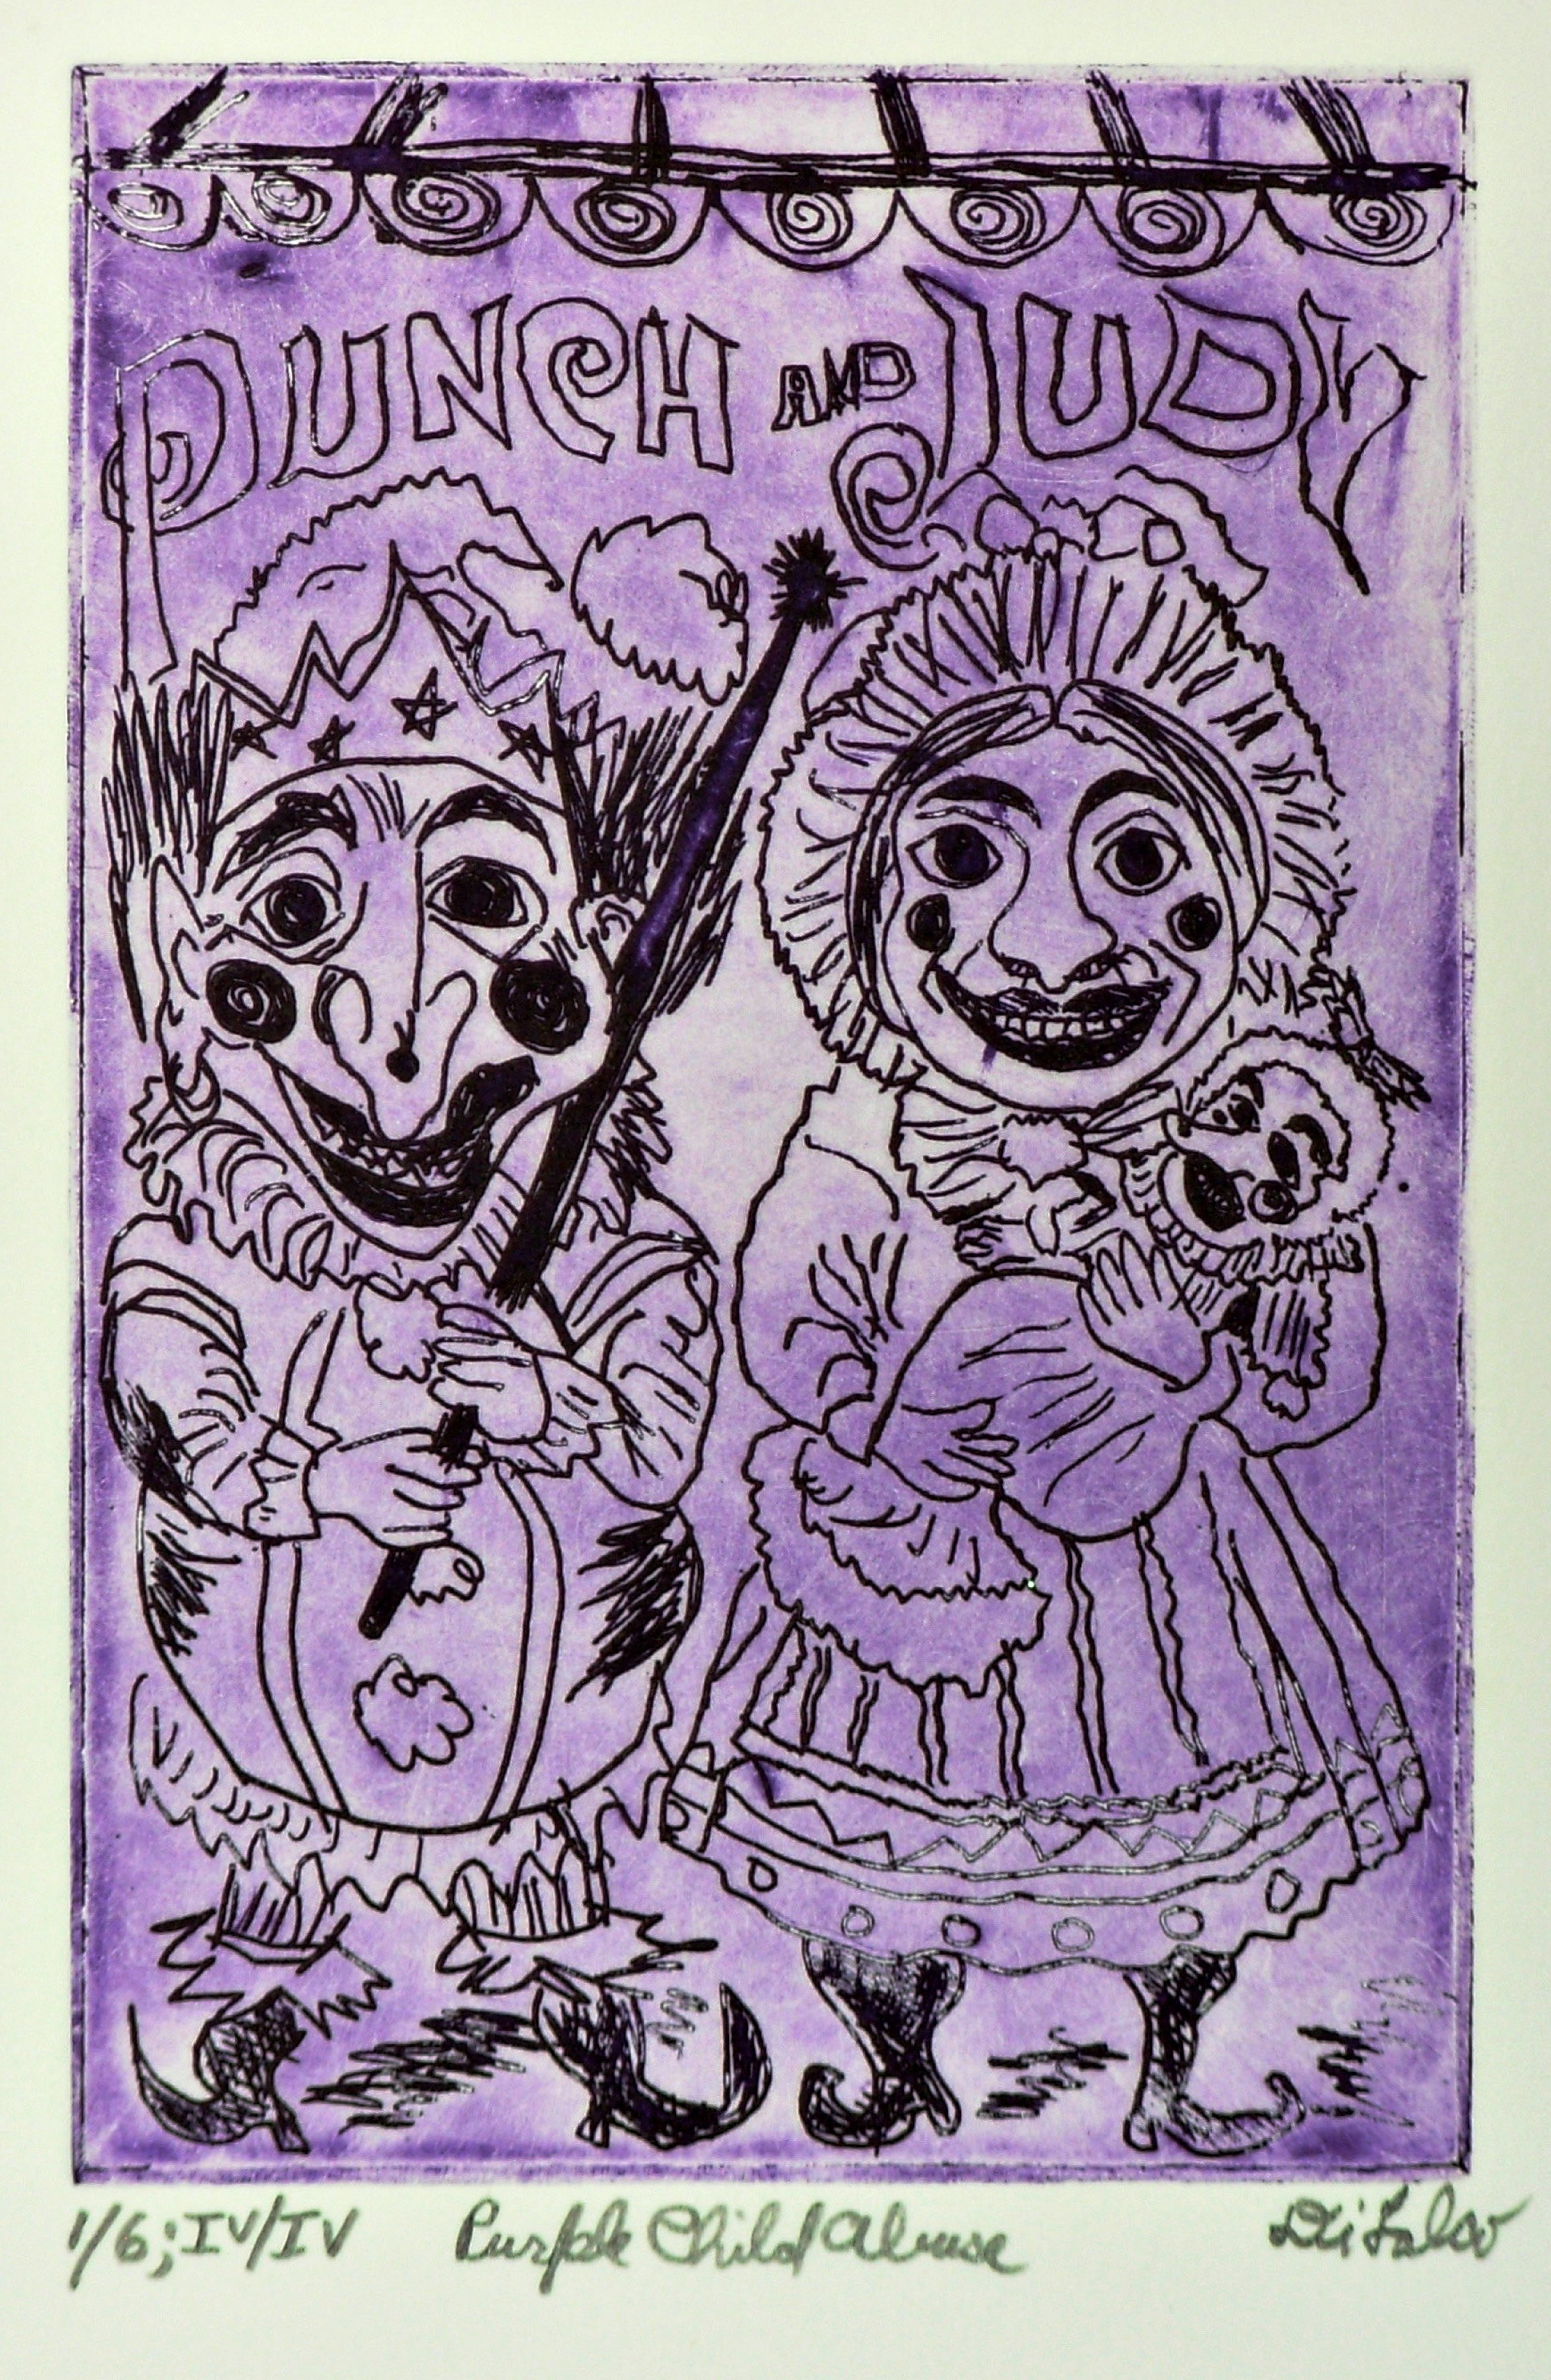 Jerry  Di Falco: 'Purple Punch and Judy', 2016 Intaglio, Theater. Artist Description: Please note that this etching is shipped and sold to the buyer without a frame or mat. This keeps the price reasonable and also allows the collector a wide range of choice in framing selection. For shipment, a sturdy cardboard box is employed. The etching is first wrapped ...